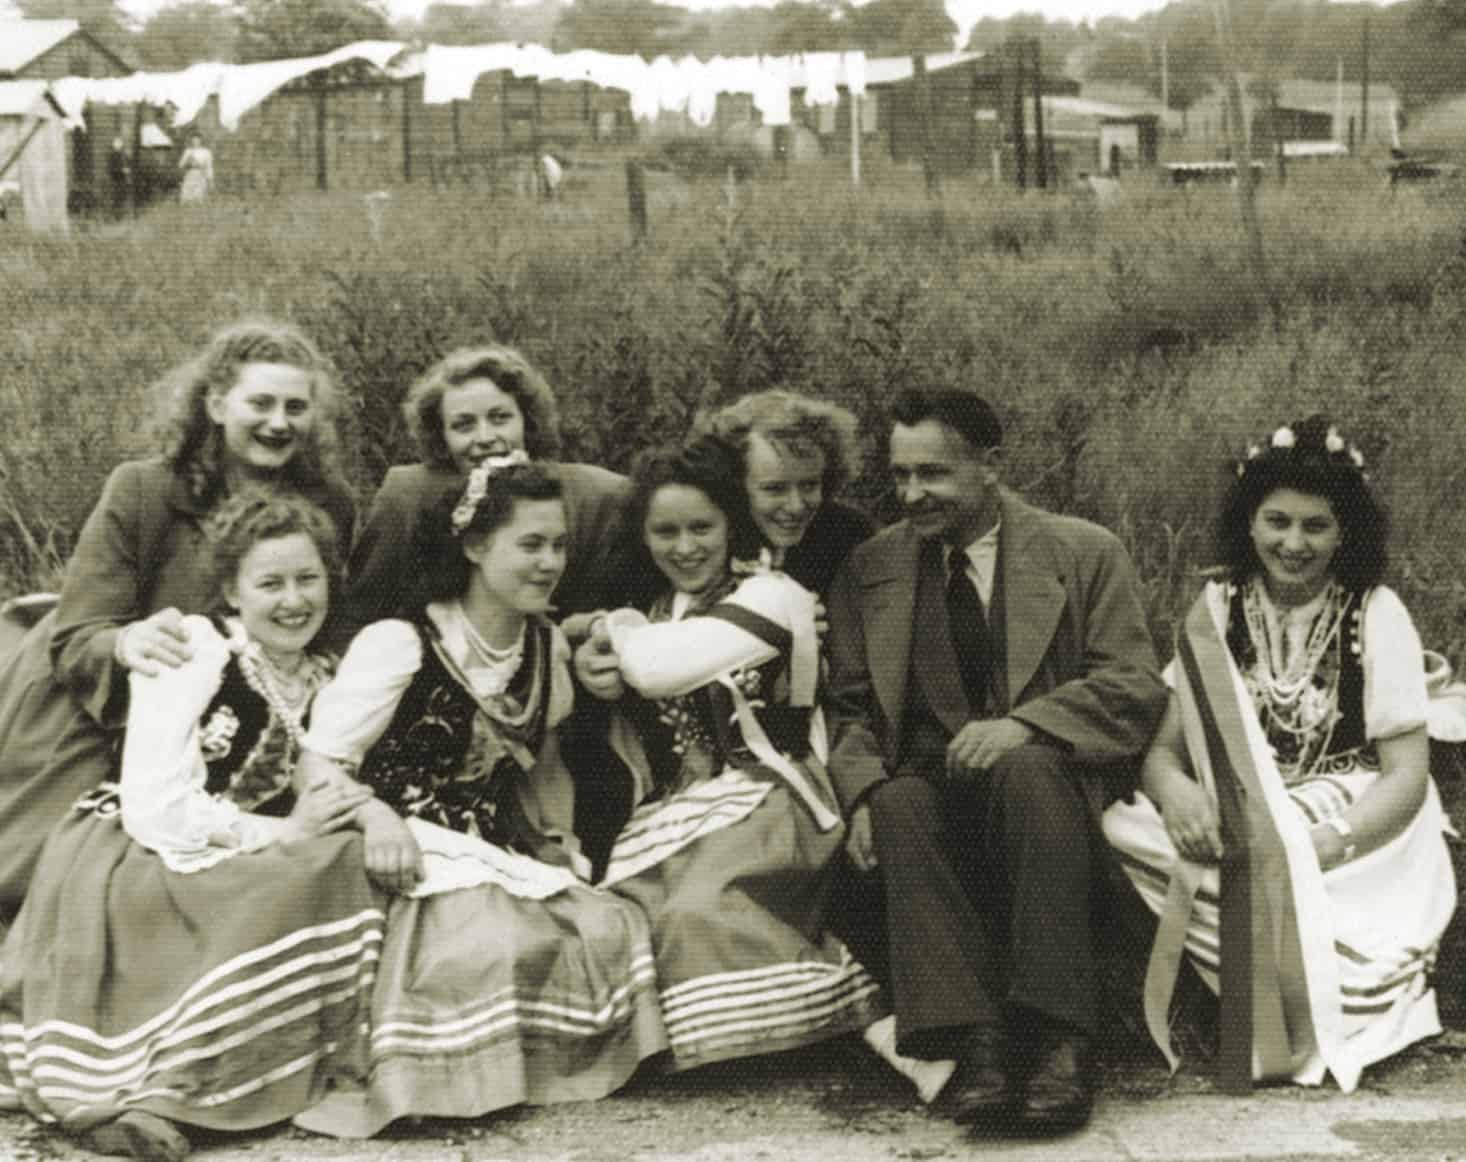 Wrottesley Park, early 1950s; Mira Kisiel last person on right